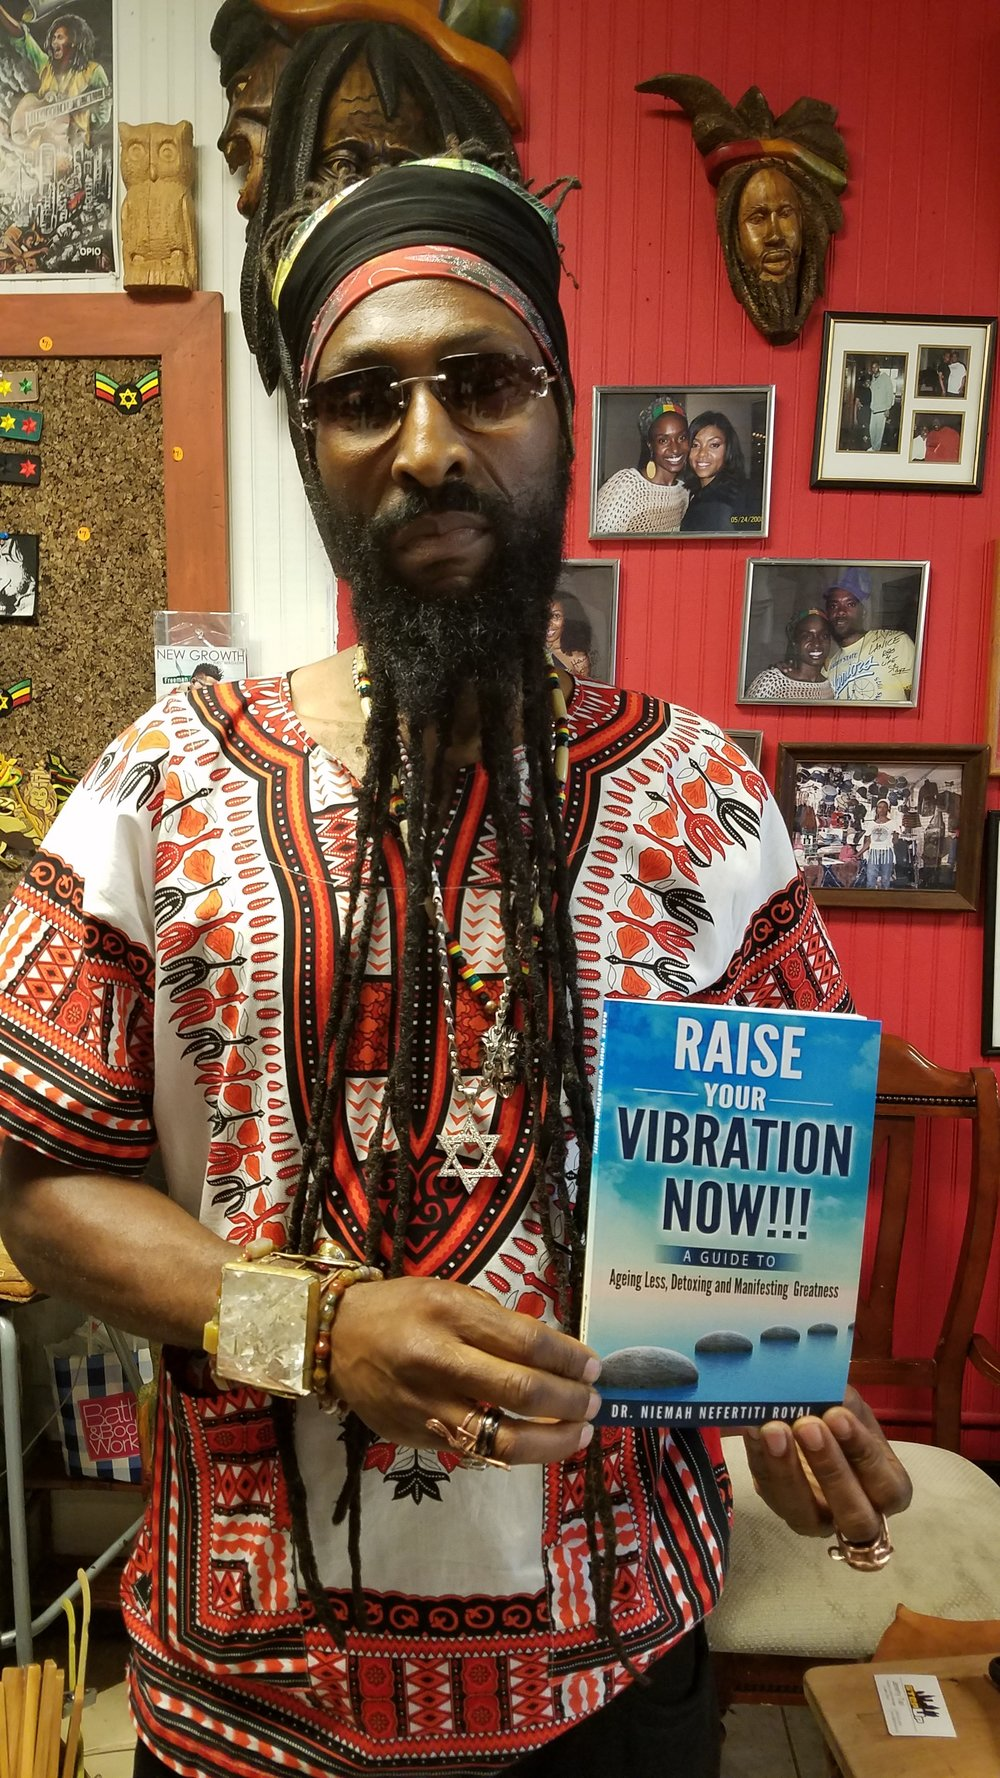 RAISE YOUR VIBRATION NOW BOOK READER 4A.jpg